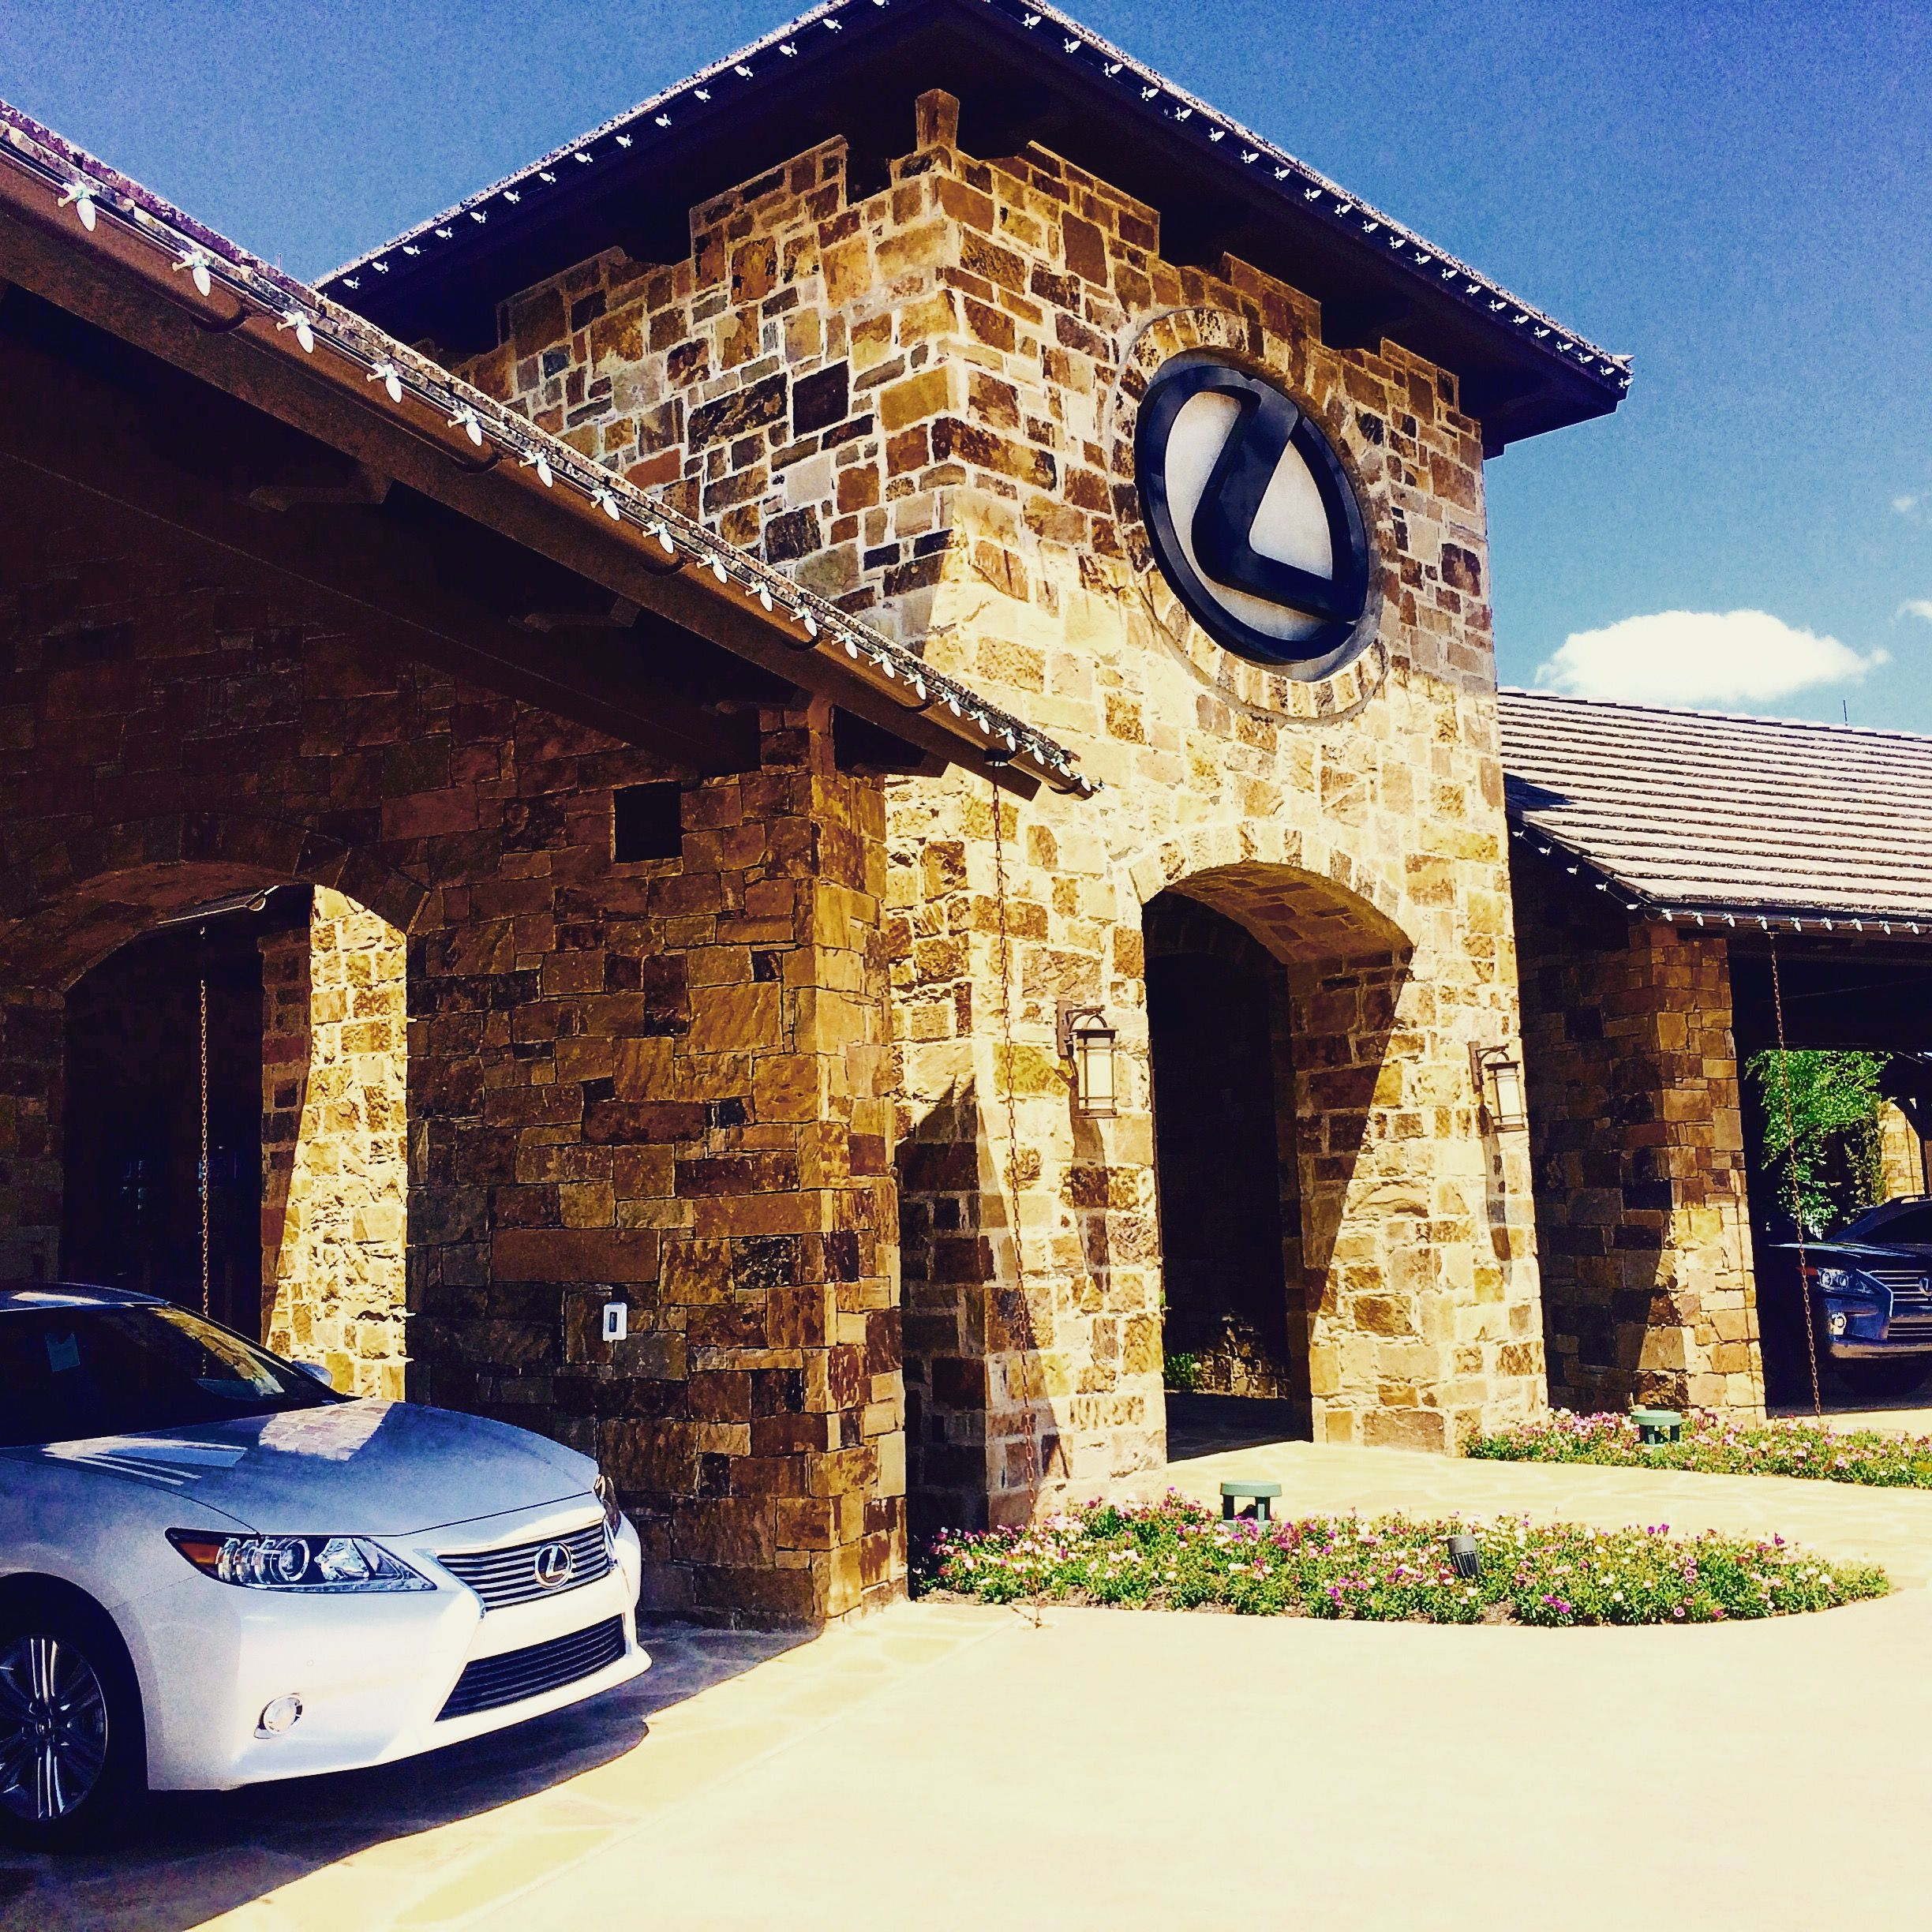 Lexus Dealership, Resort Style, San Antonio, Luxury, Texas, Saint Antonio,  Midland Texas, Lush